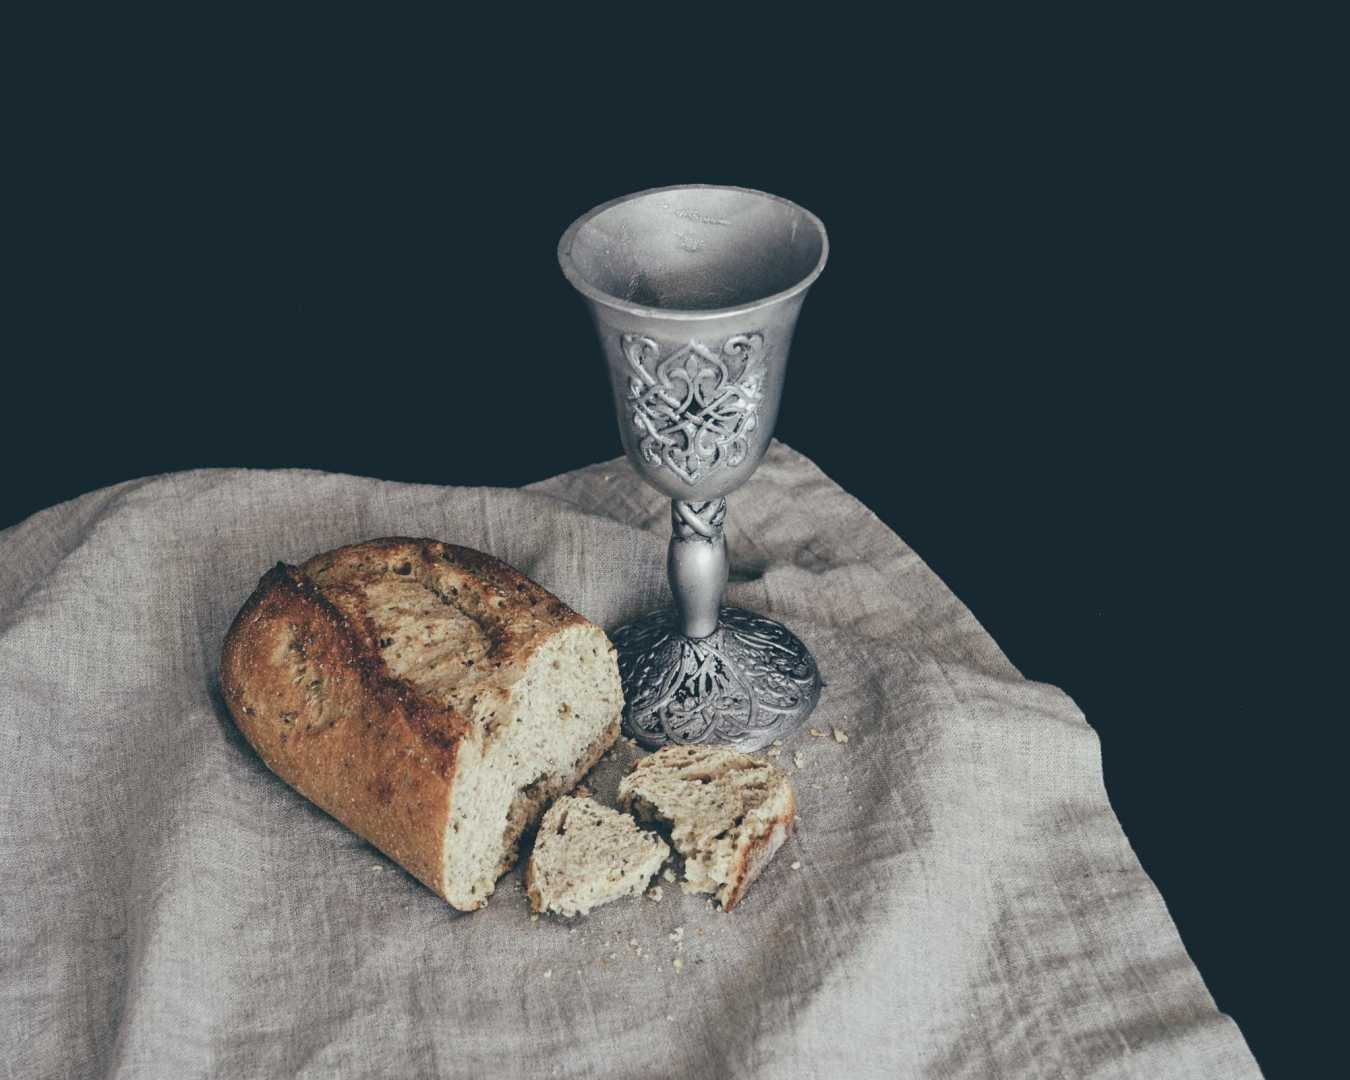 A Communion Prayer for When We Are Separated